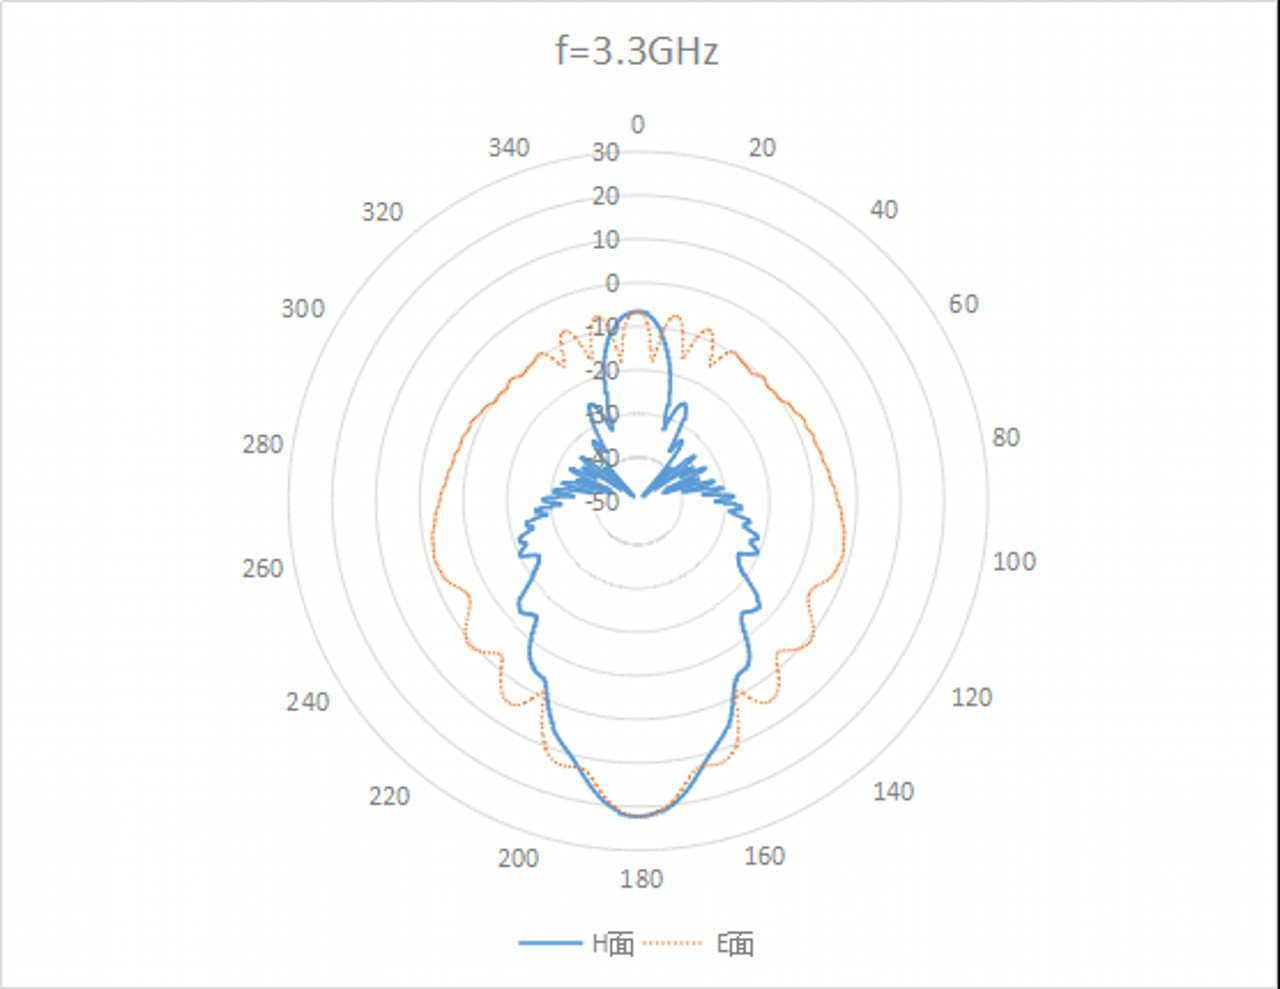 WR-340 Waveguide Standard Gain Horn Antenna. Nominal Gain: 20 dBi Gain. Frequency Range: 2.2 GHz to 3.3 GHz - 2